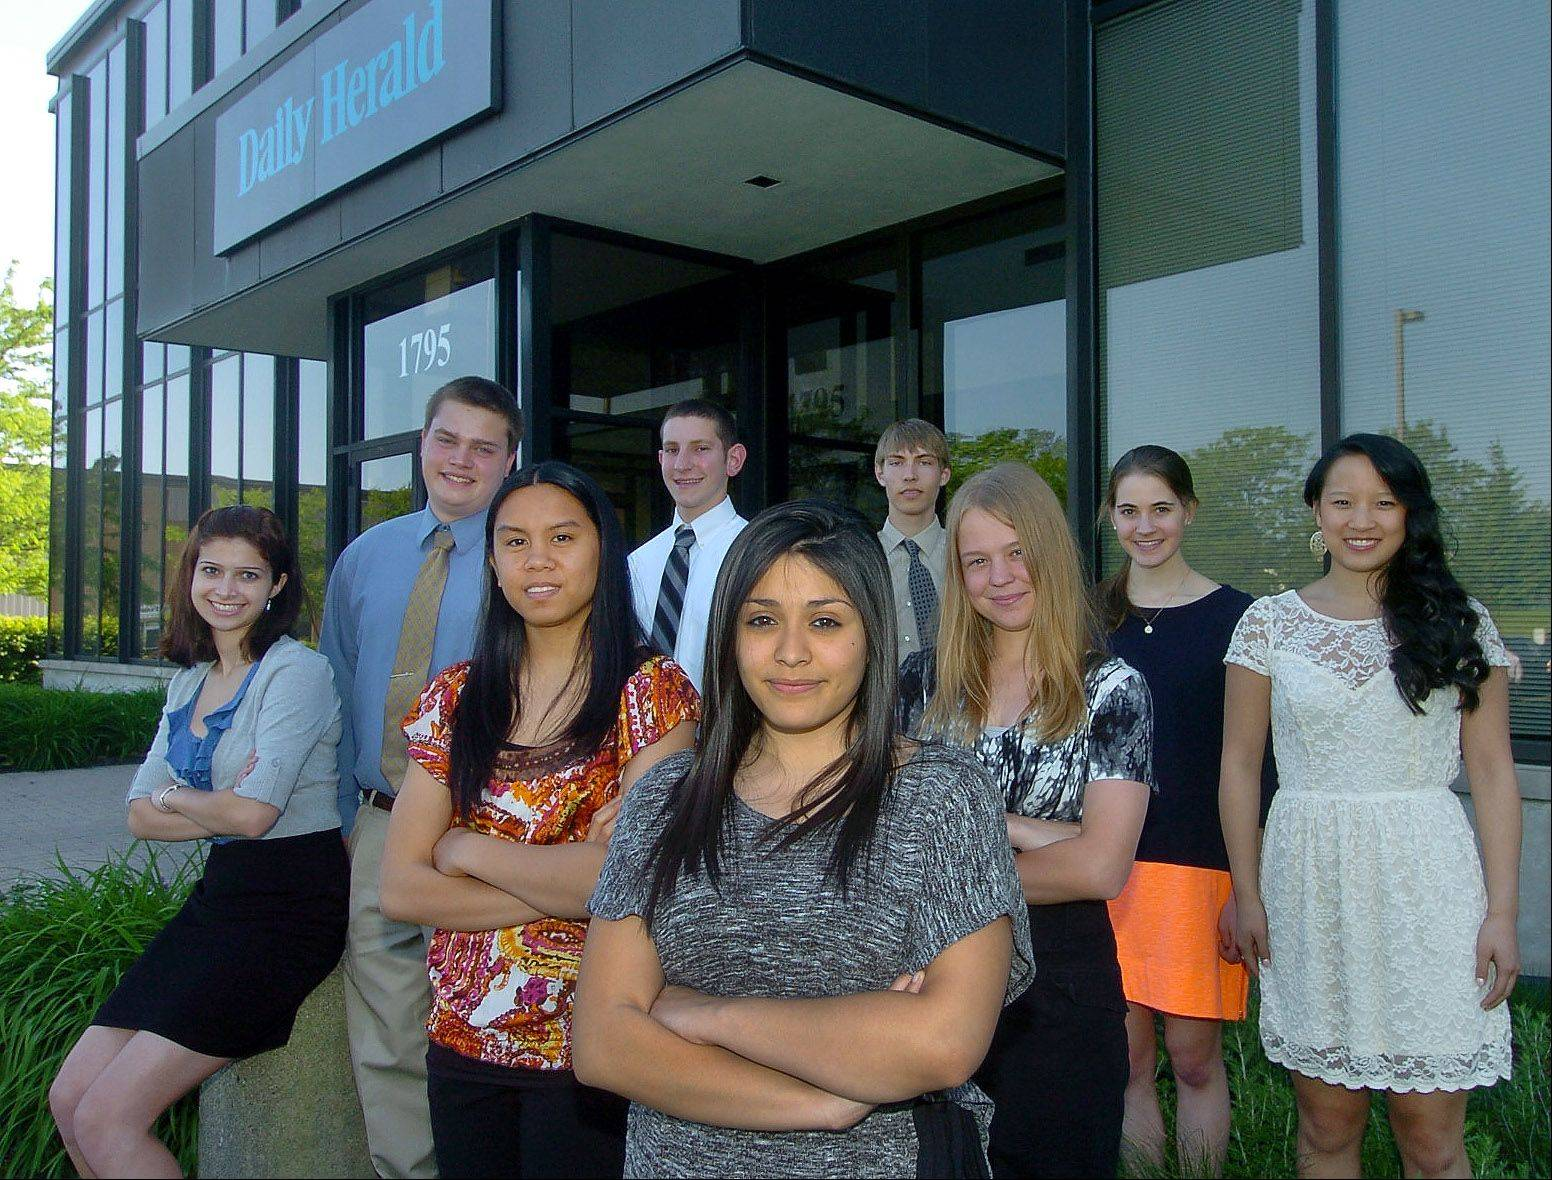 The 2011-12 Lake County Academic Team outside the Daily Herald's Libertyville office. Back row, from left: Lissa Mandell, Lake Zurich High School; David Bouma, Grant Community High School; Jonathan Kersky, Adlai E. Stevenson High School; Patrick Juras, Lake Zurich High School. Middle row, from left: Elizabeth Ulanday, Libertyville High School; Nicole Schmidt, Mundelein High School; Ingrid Watts, Woodlands Academy of the Sacred Heart; Hannah Kay, Adlai E. Stevenson High School. In front, Soledad Mendoza, Round Lake High School. Not pictured: Jenna Westerberg, Warren Township High School.